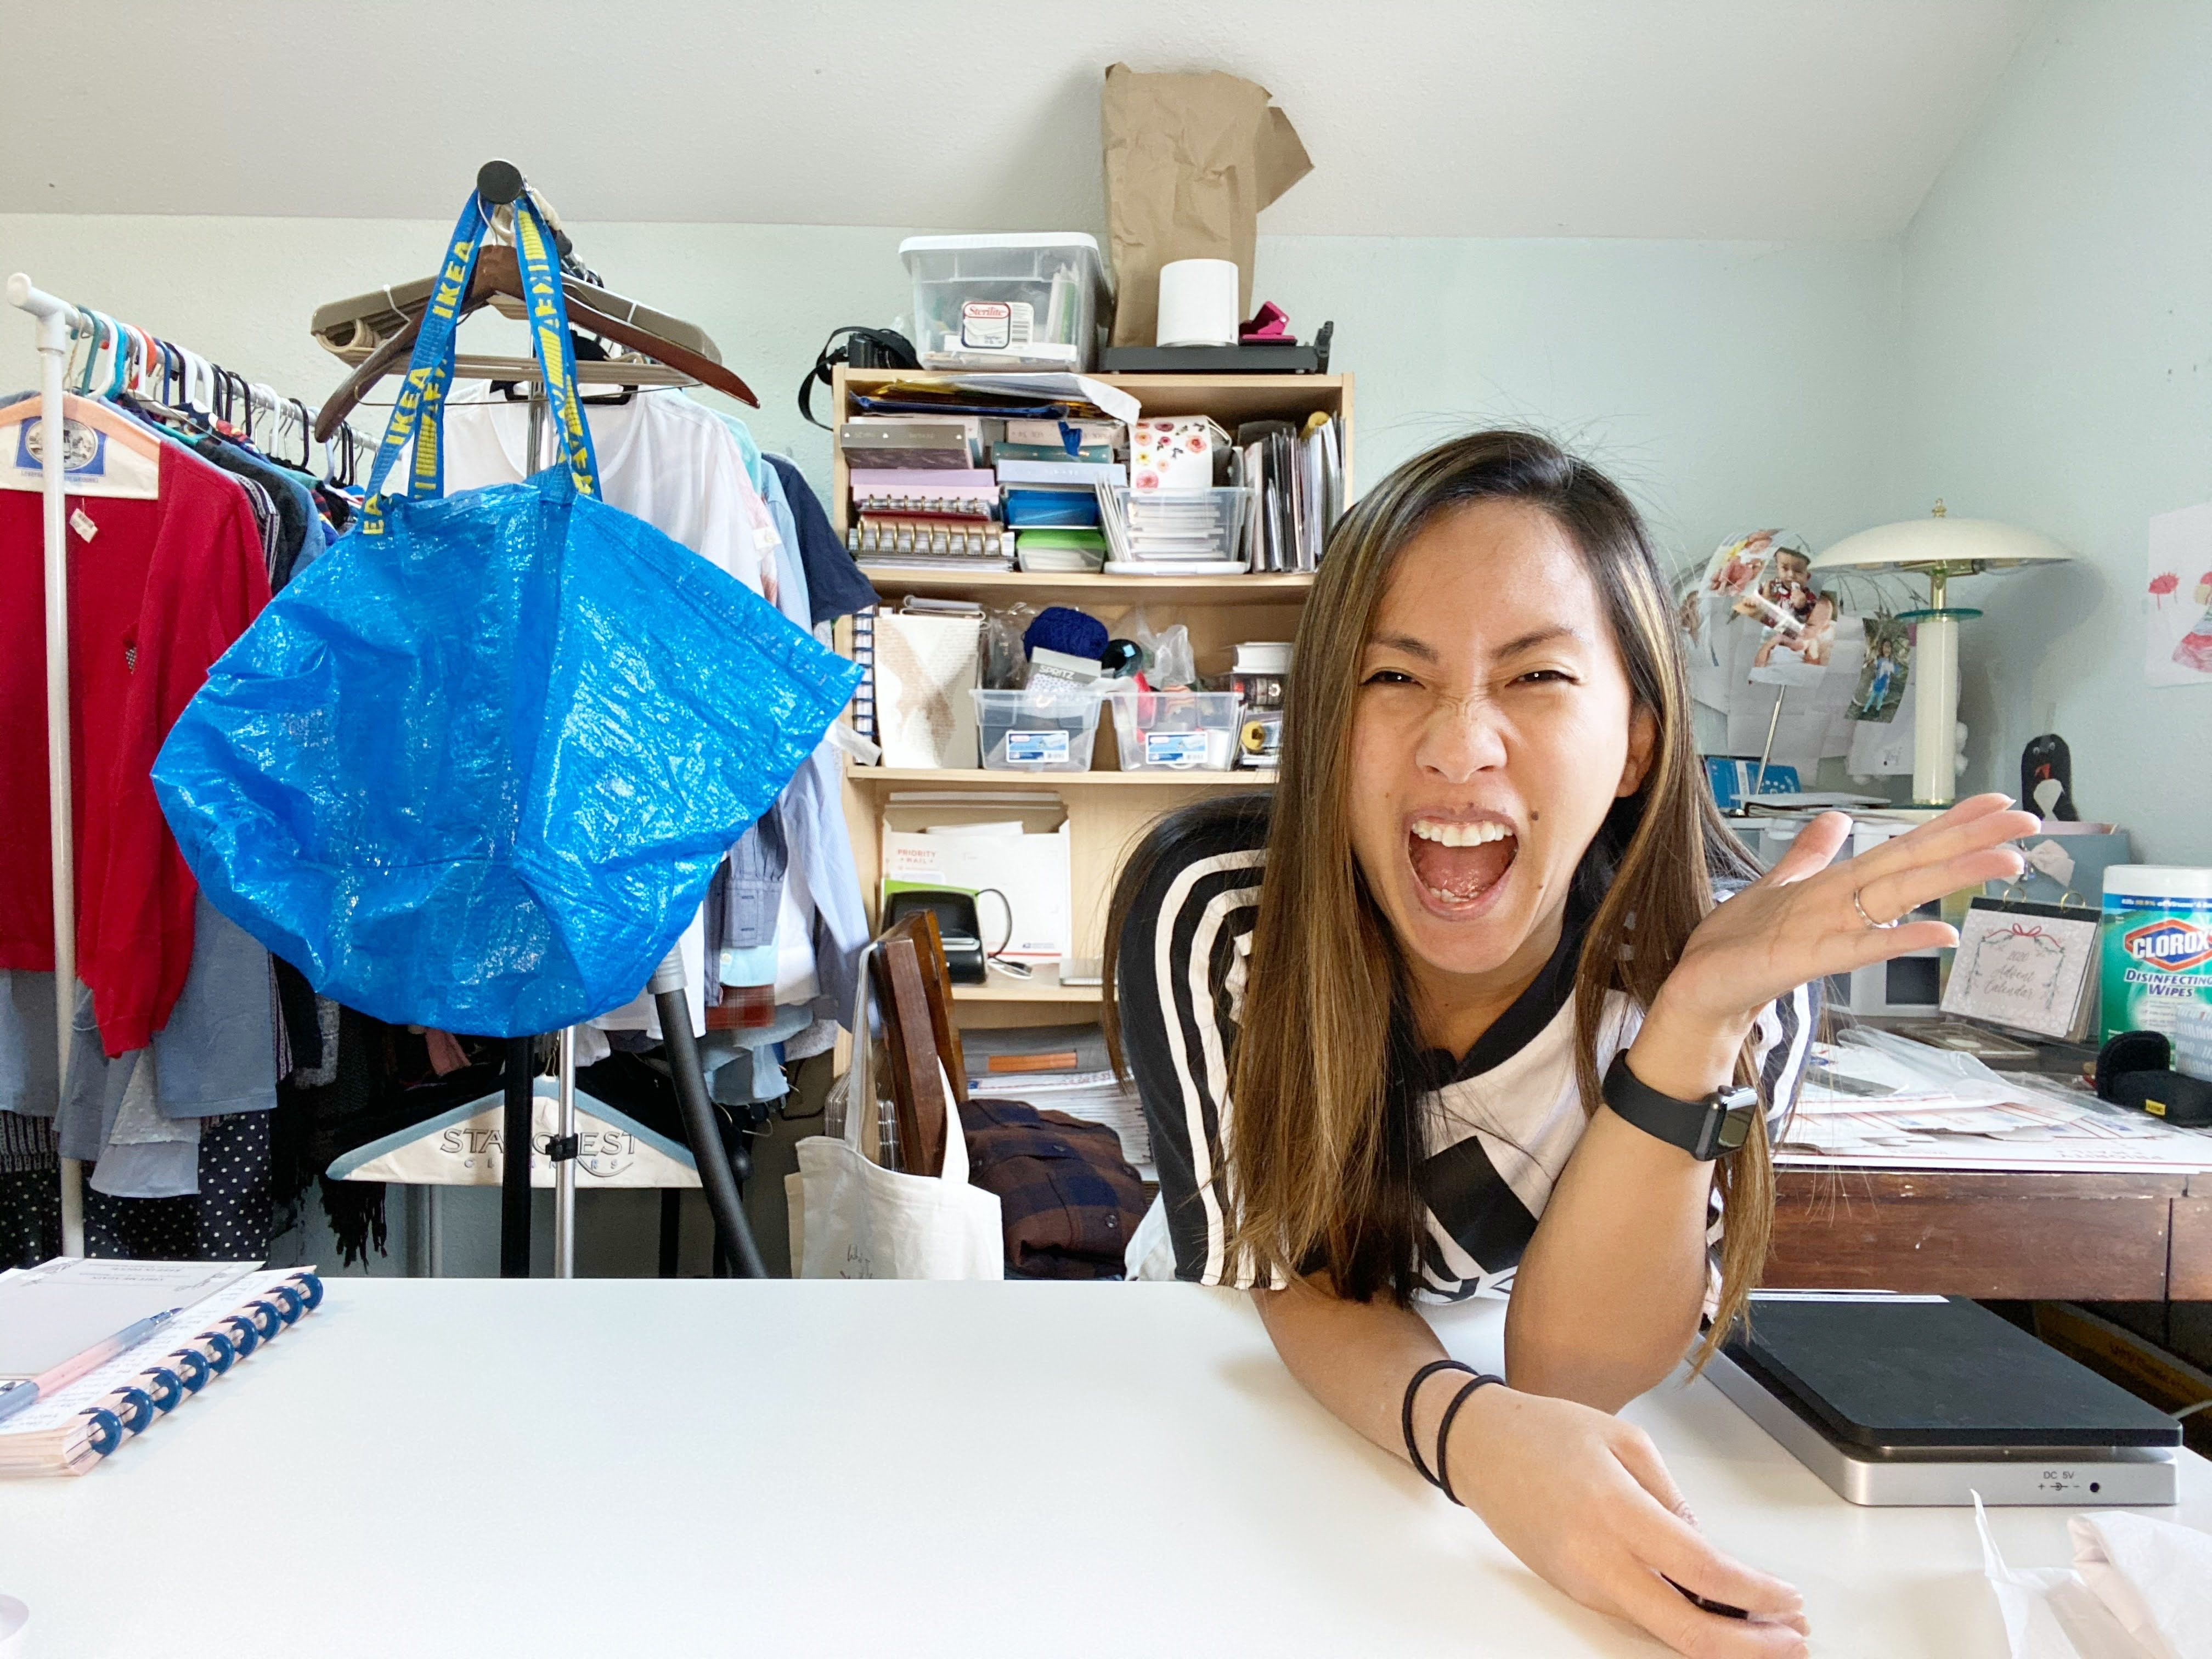 Becky Park teaches you everything about reselling on Poshmark